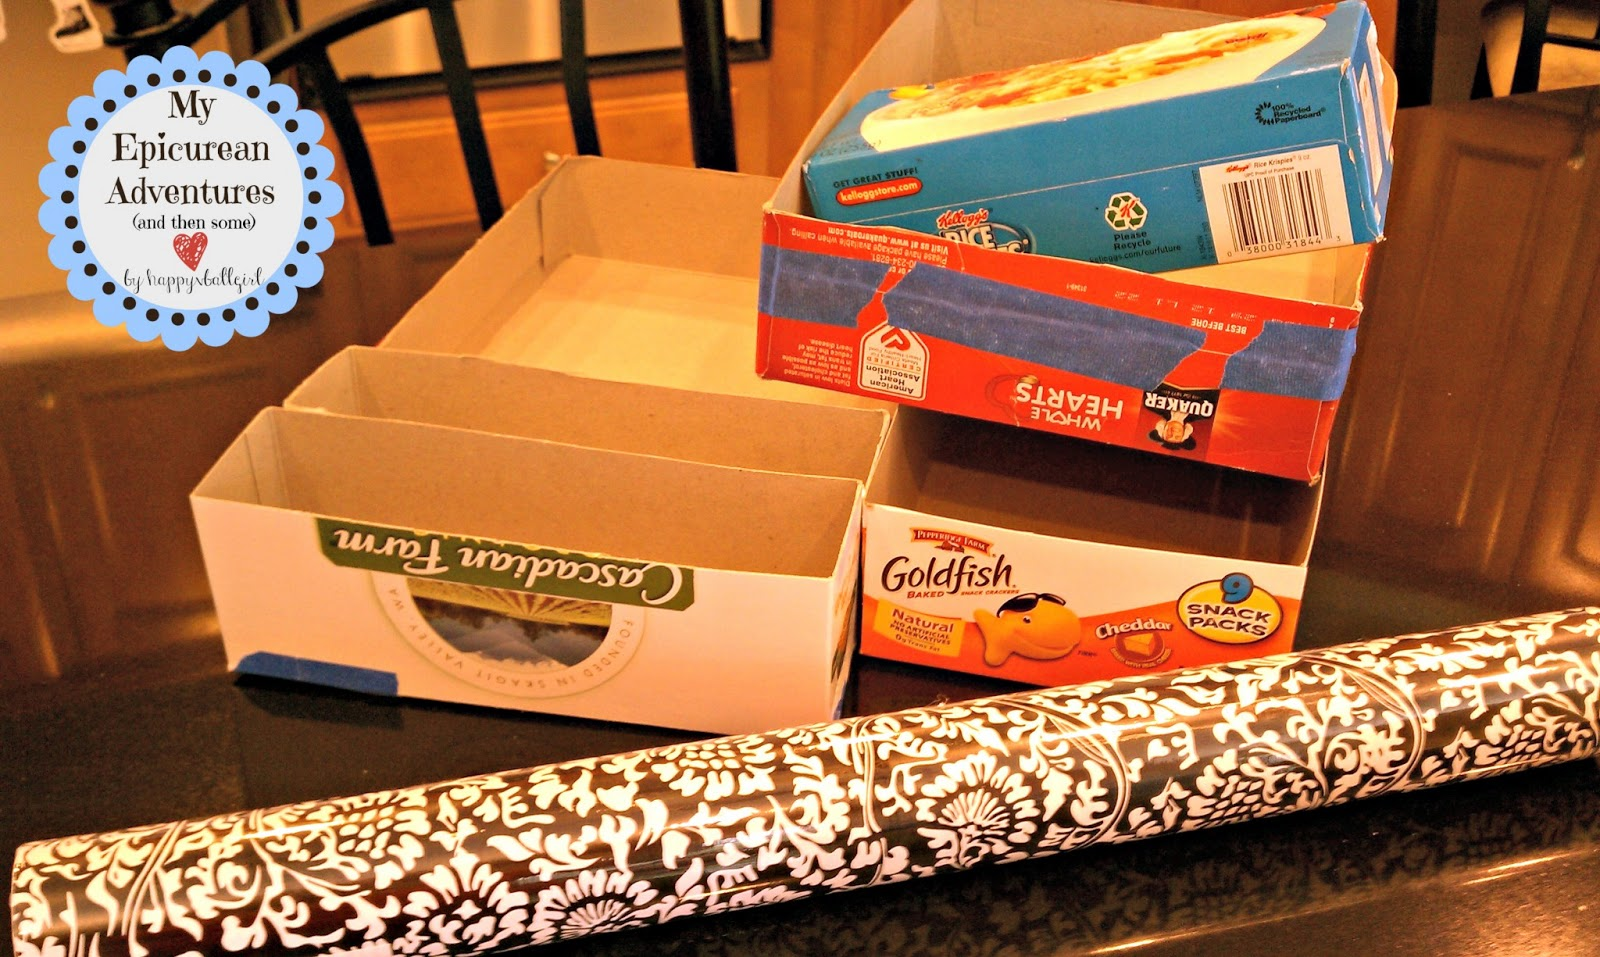 My epicurean adventures do it yourself drawer organizers using diy drawershelf organizers made cheap and easy using contact paper and cereal boxes solutioingenieria Image collections